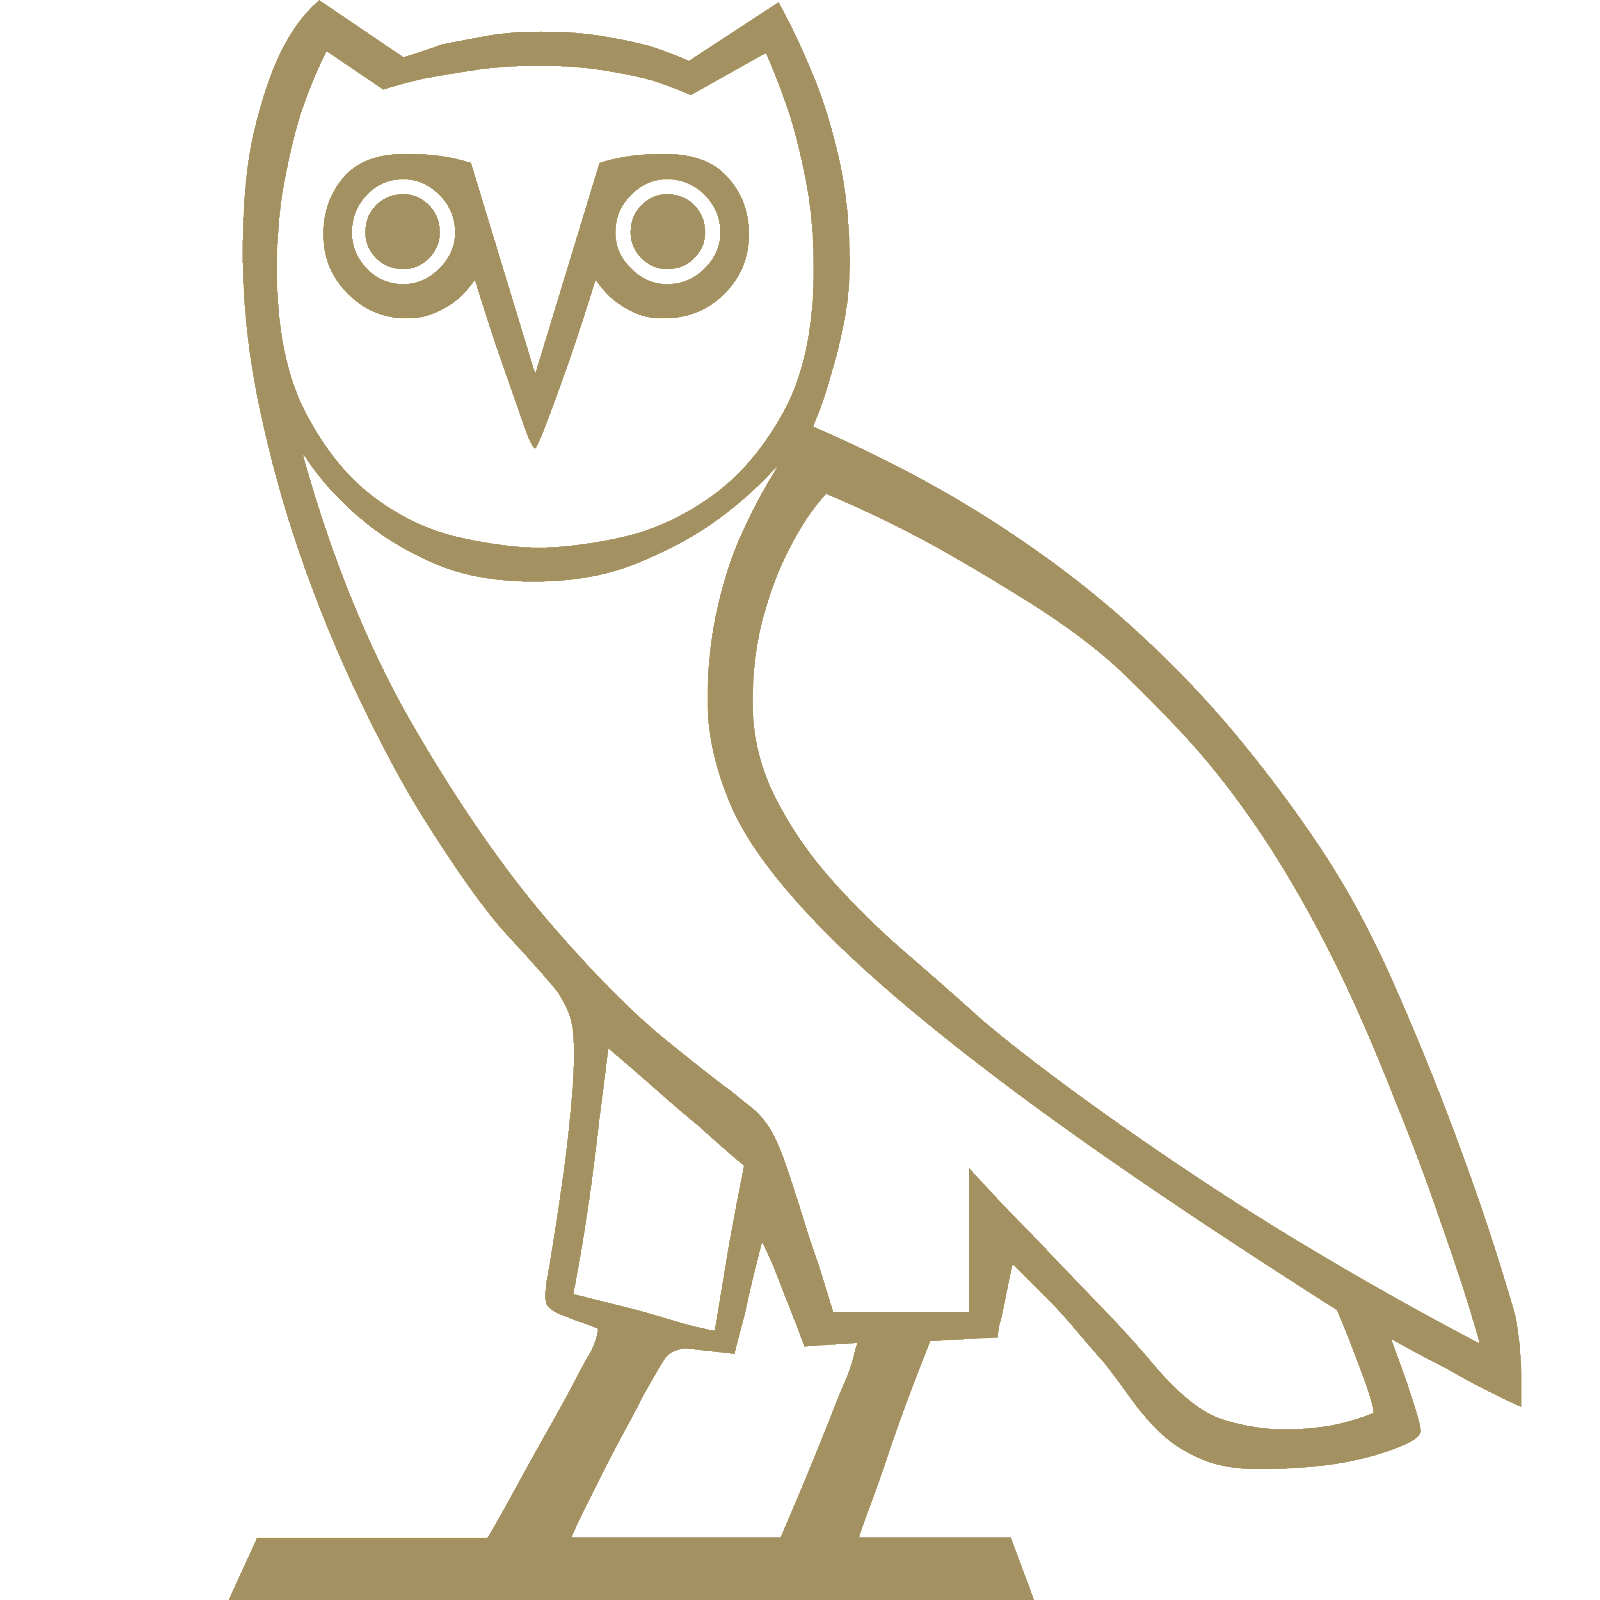 Ovo png clipart images gallery for free download.